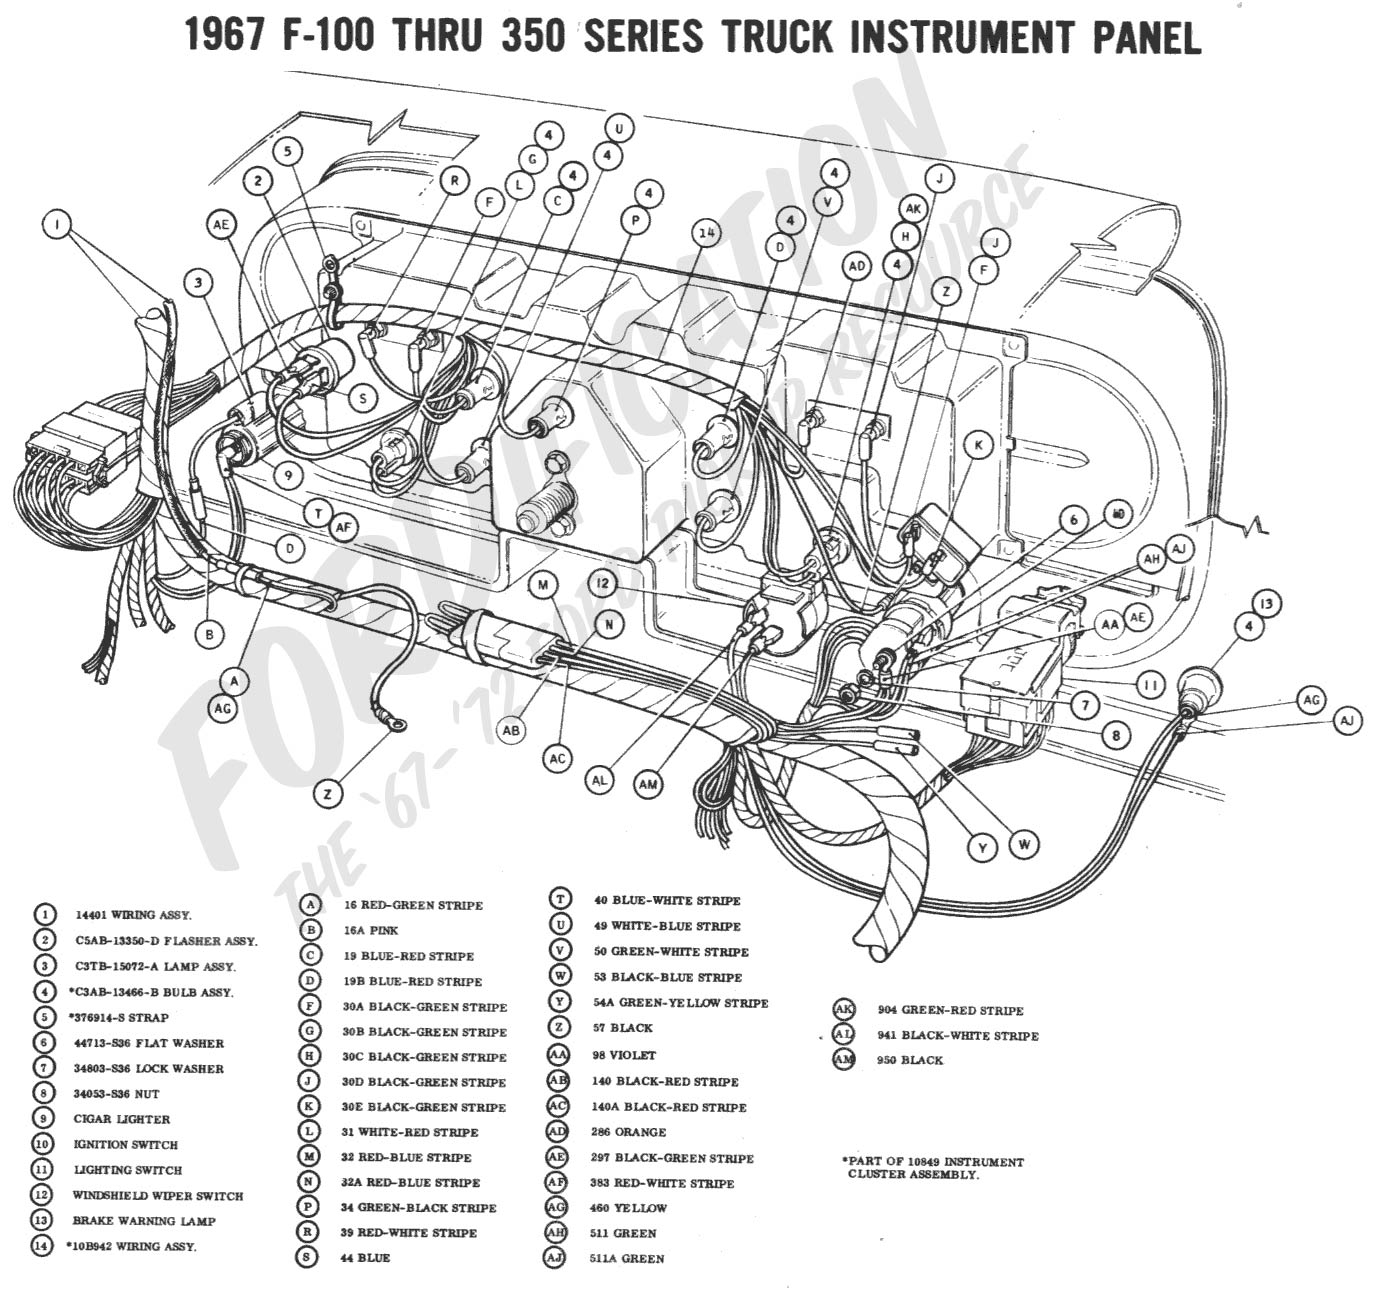 wiring 1967instrumentpanel ford truck technical drawings and schematics section h wiring 1967 Plymouth Fury Wiring-Diagram at bakdesigns.co